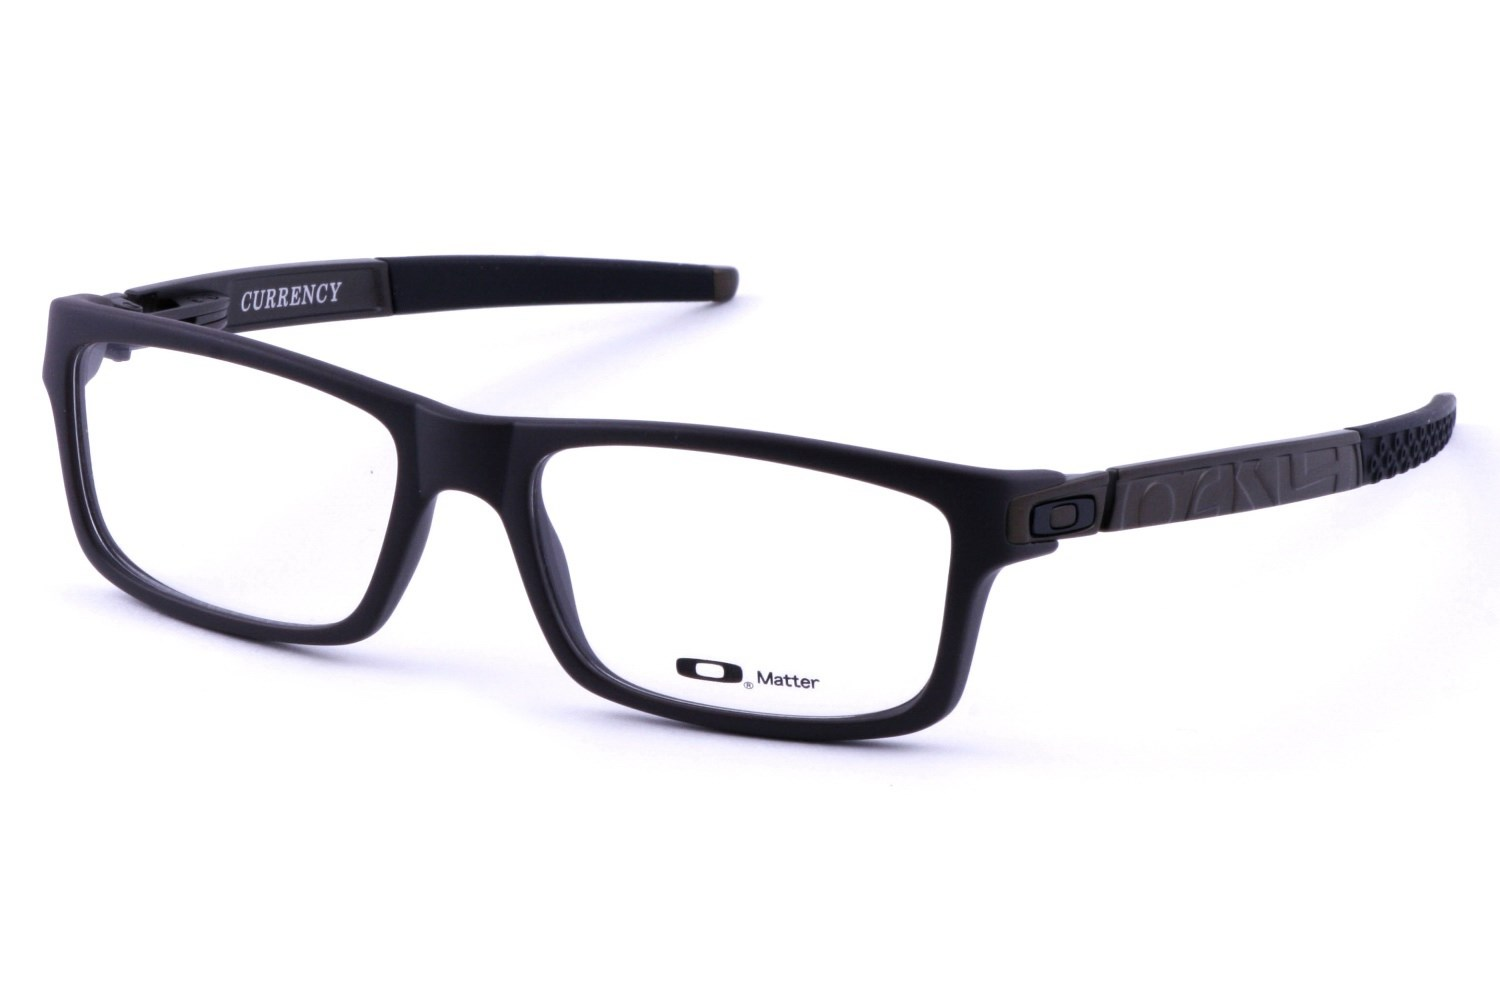 Oakley Frame Prescription Glasses : Oakley Currency (54) Prescription Eyeglasses ...